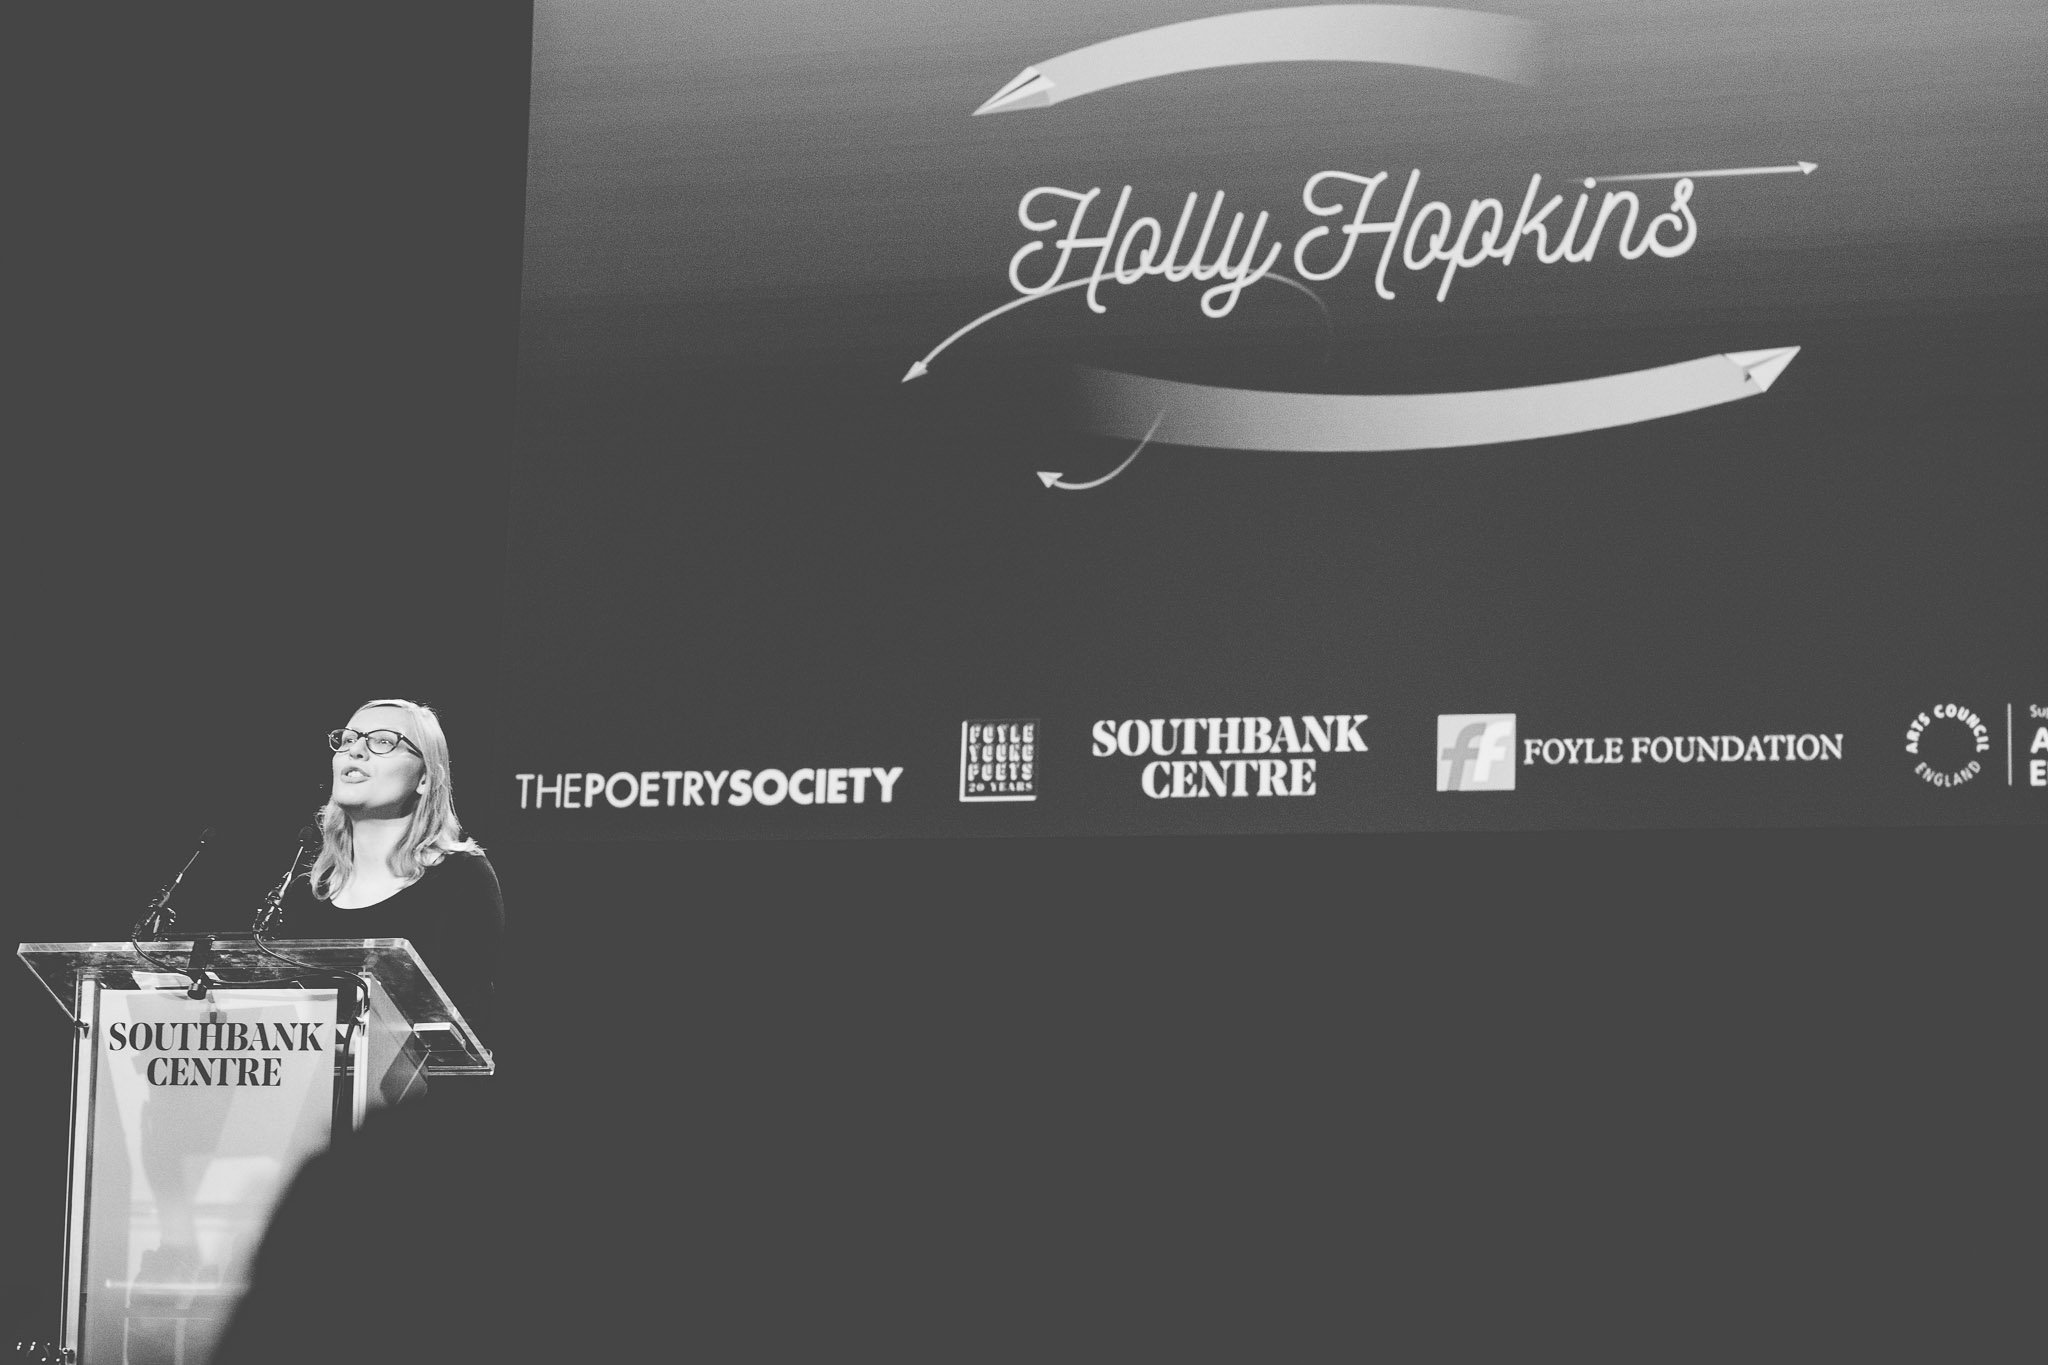 Poet Holly Hopkins on stage reading her poetry at the Southbank Centre London